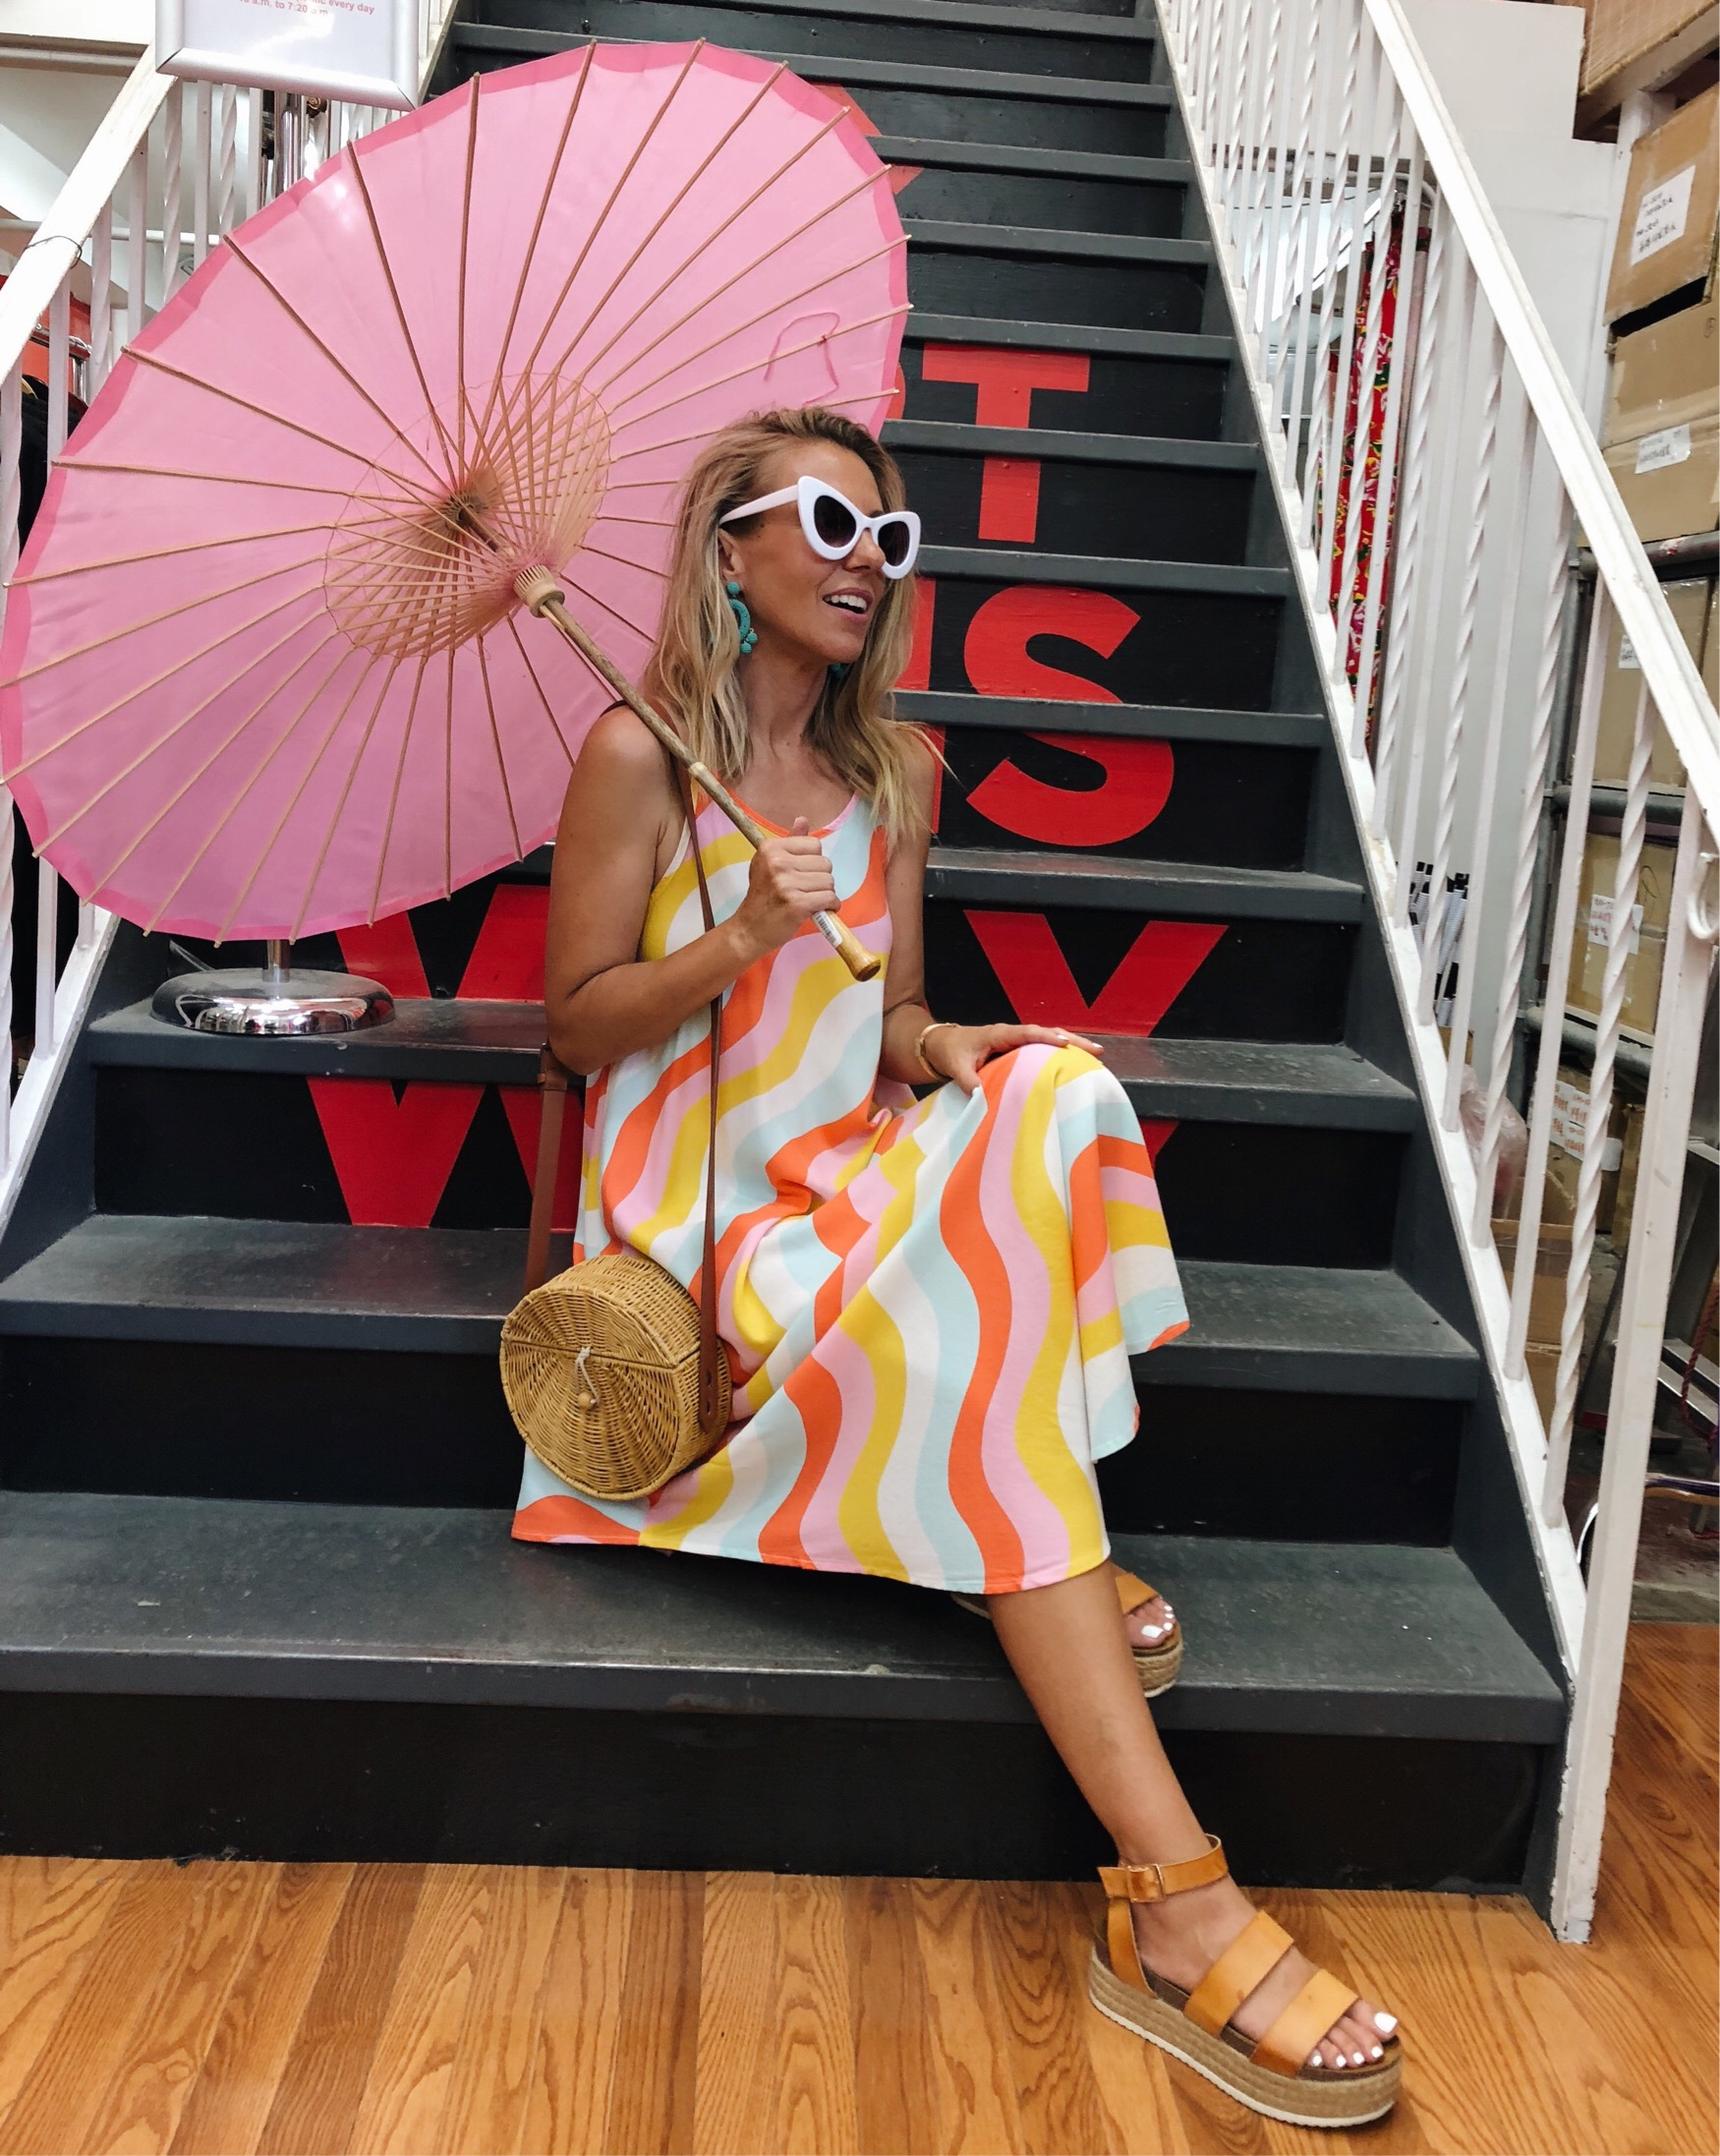 ADVENTURES IN NEW YORK- Jaclyn De Leon Style + retro style maxi dress + target style + straw crossbody handbag + platform sandals + white retro sunglasses + striped dress + casual summer style + NY street style